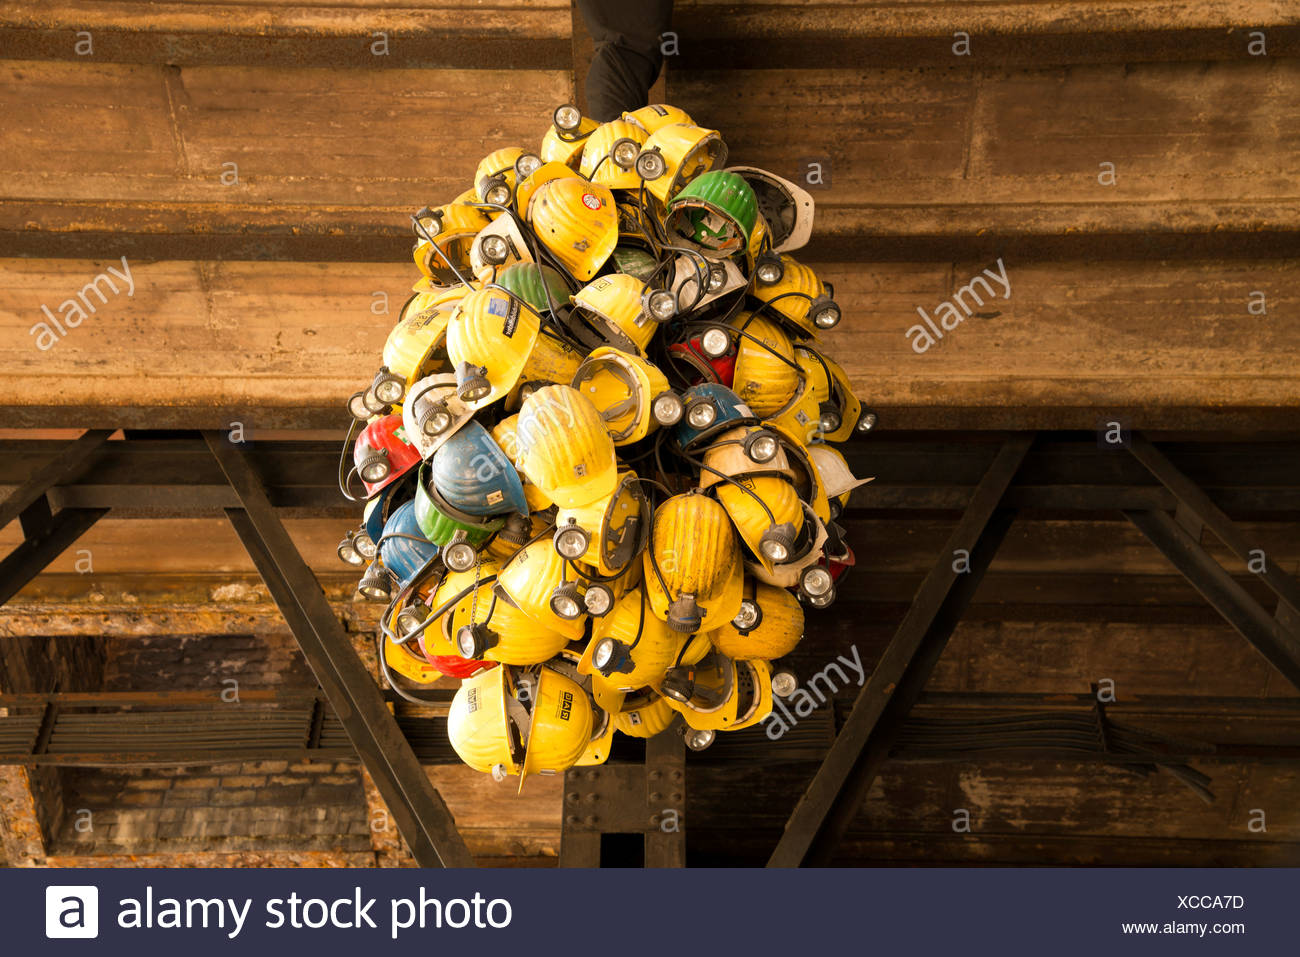 Working clothes equipment construction helmets mining mine occupation profession clothes Germany Duisburg former Europe yellow Stock Photo